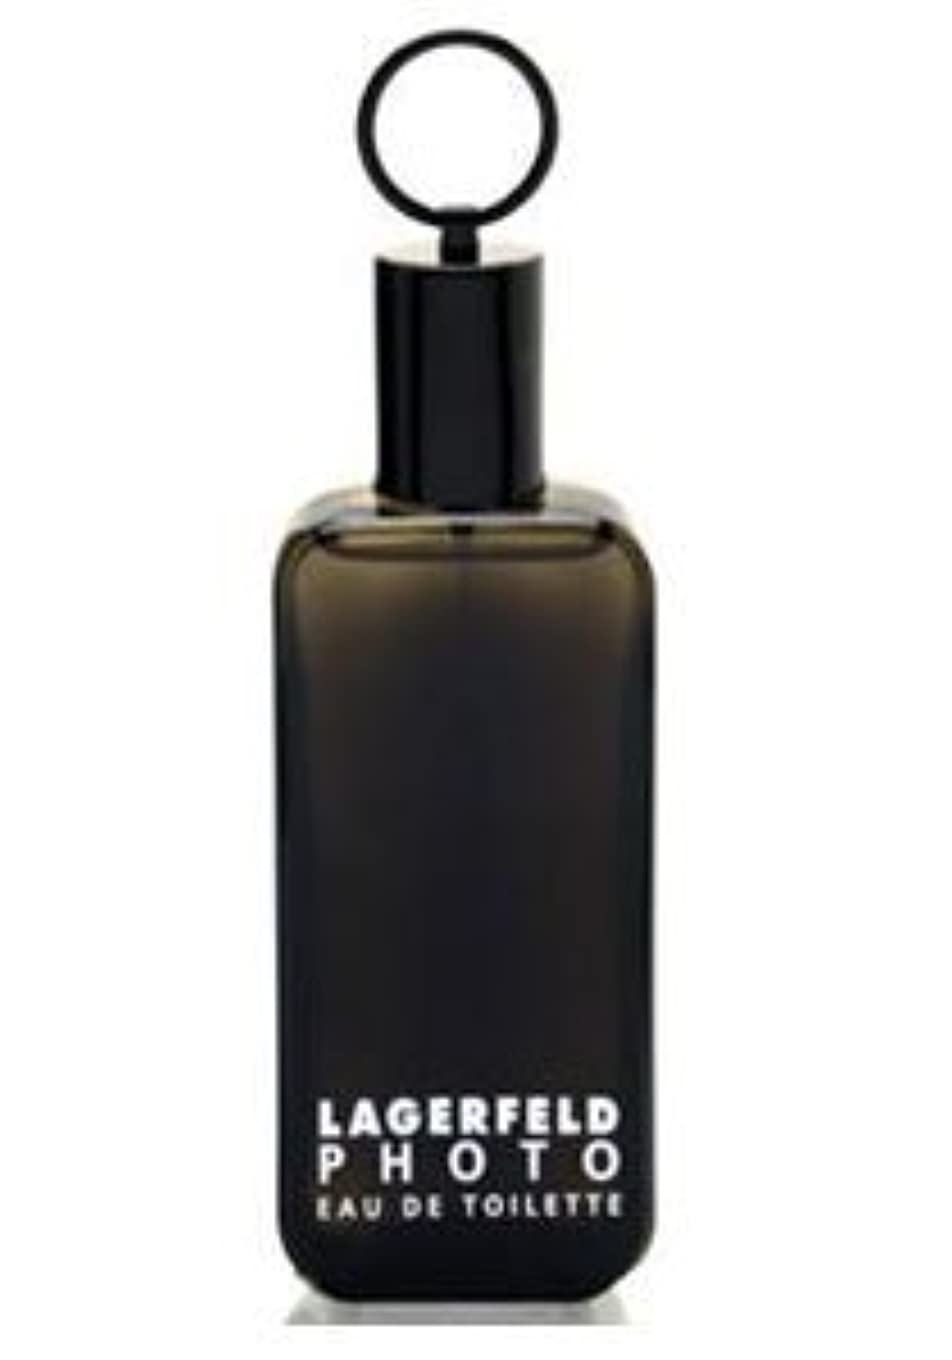 雲カスケードどれでもPhoto (フォト) 4.2 oz (125ml) EDT Spray by Karl Lagerfeld for Men